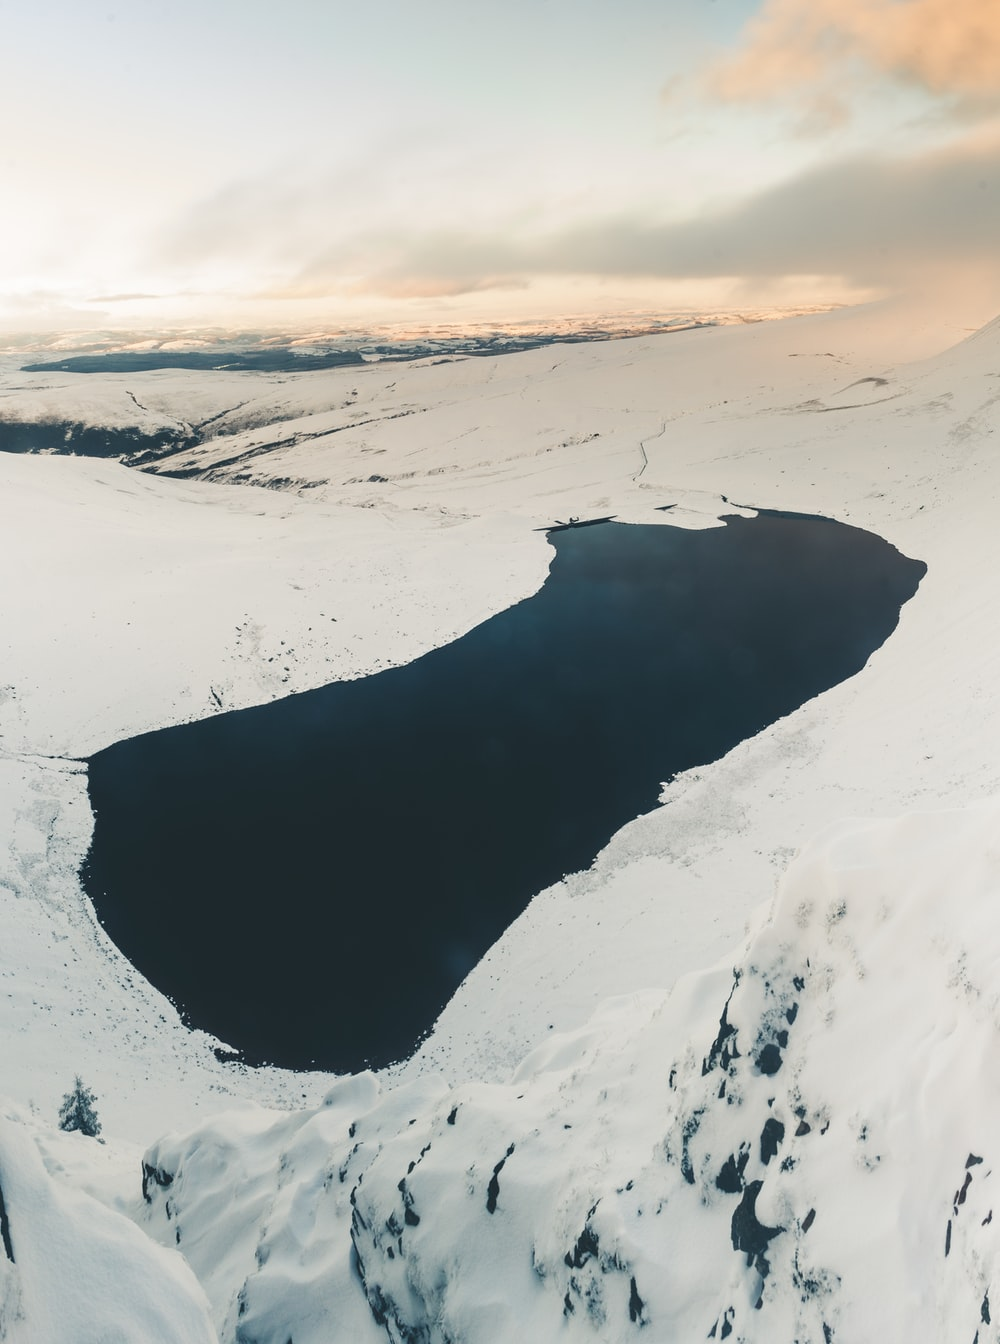 calm body of water surrounded with mountainous terrain covered with snow at daytime